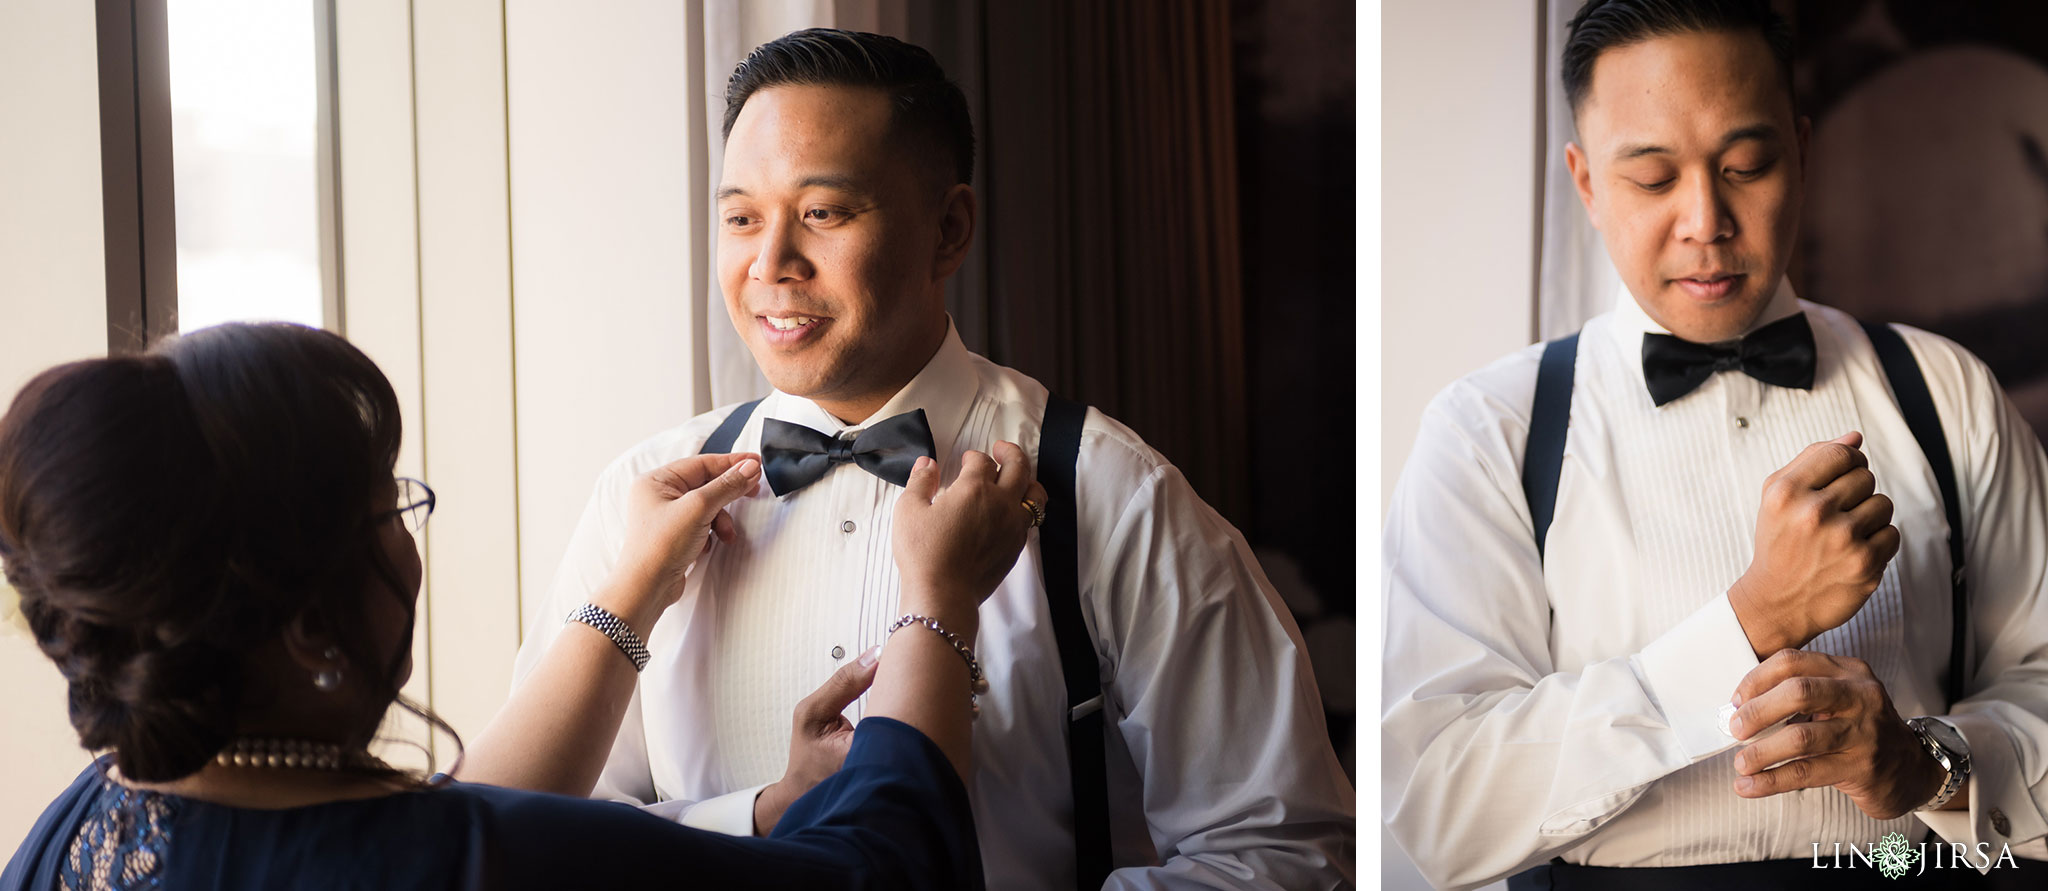 10 los angeles county filipino groom wedding photography